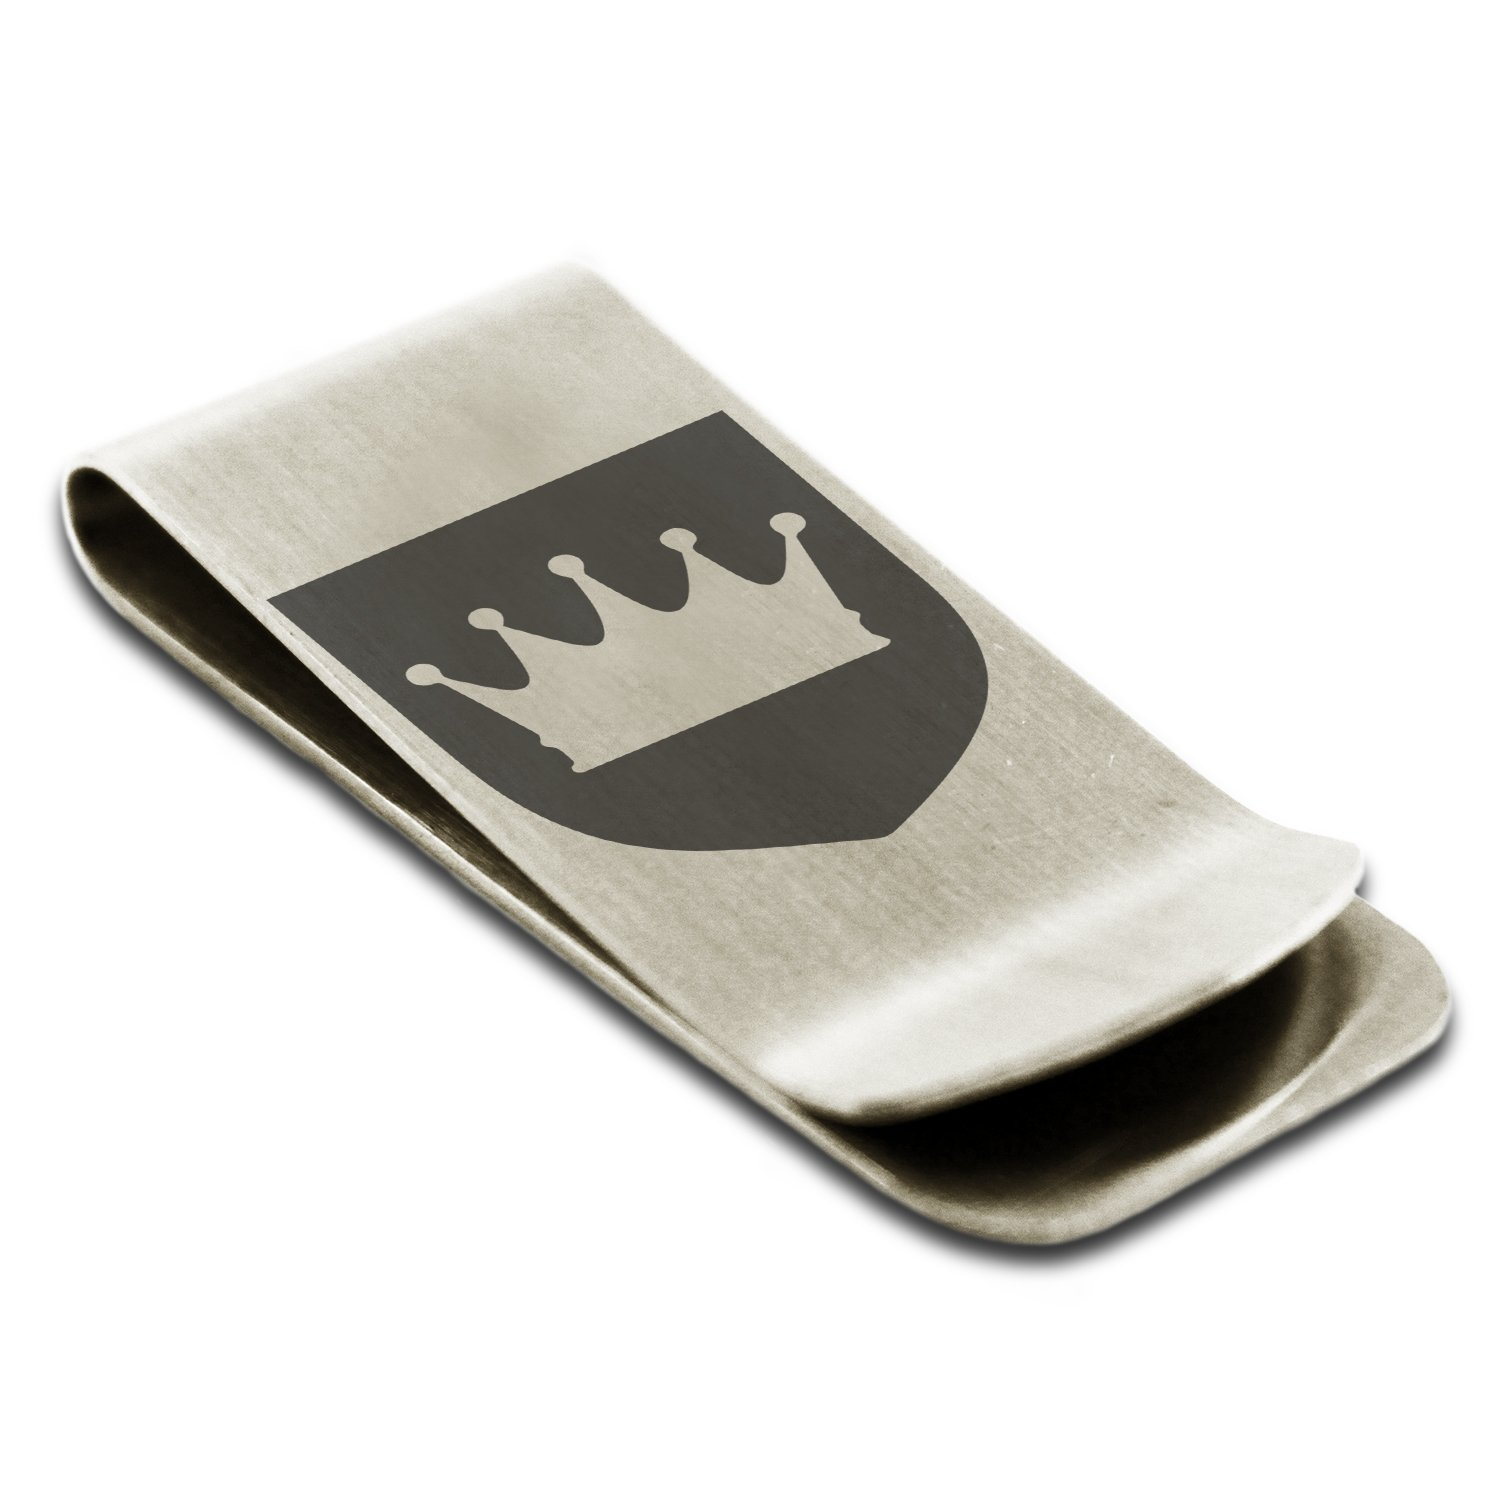 Stainless Steel Crown Royal Coat of Arms Shield Symbol Engraved Money Clip Credit Card Holder by Tioneer (Image #1)